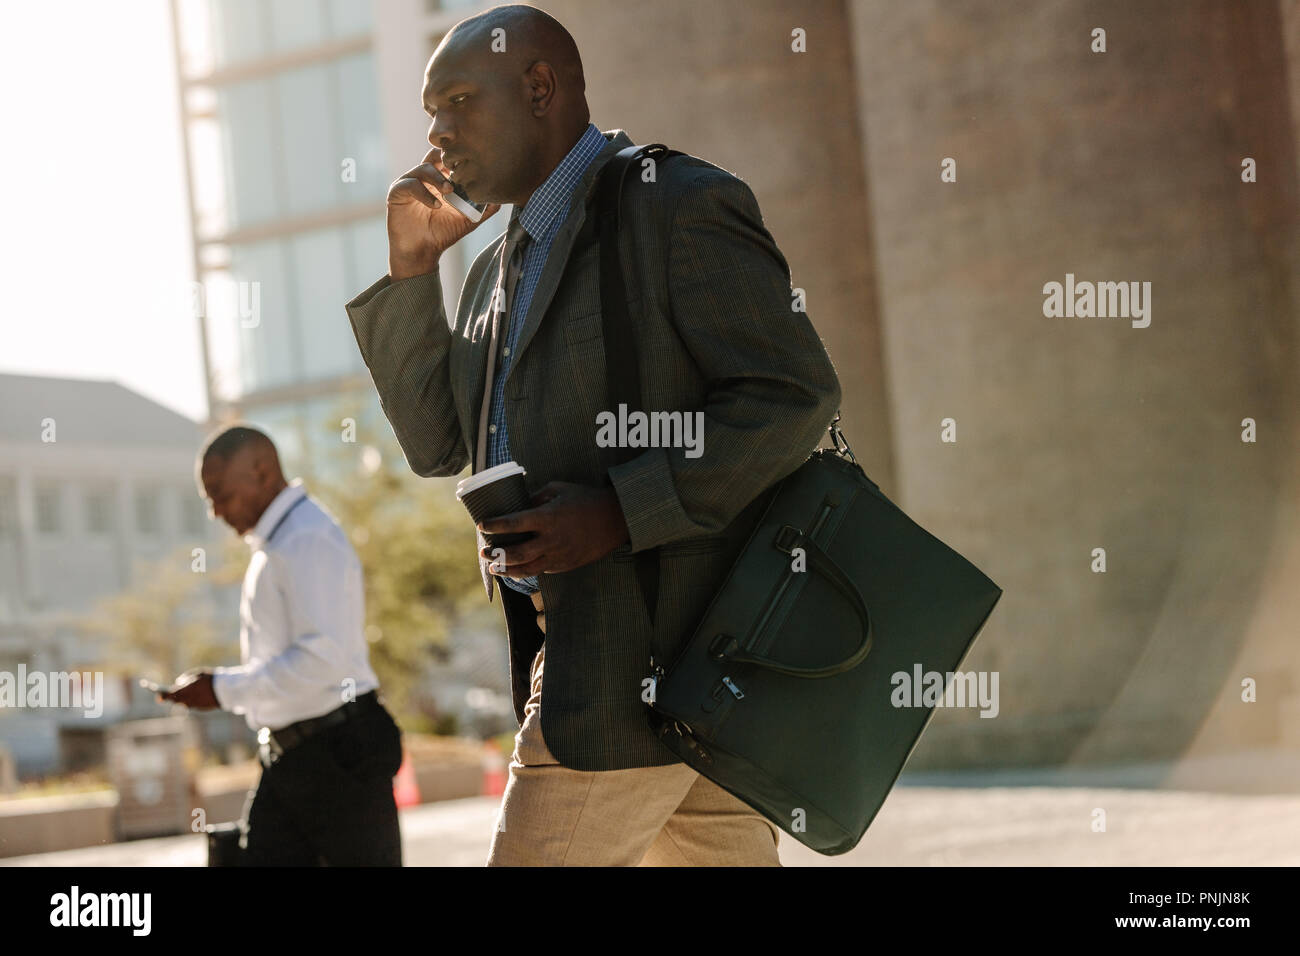 Men using mobile phone while commuting to office. Businessmen leading a busy life using mobile phones and drinking coffee while walking on street to o - Stock Image